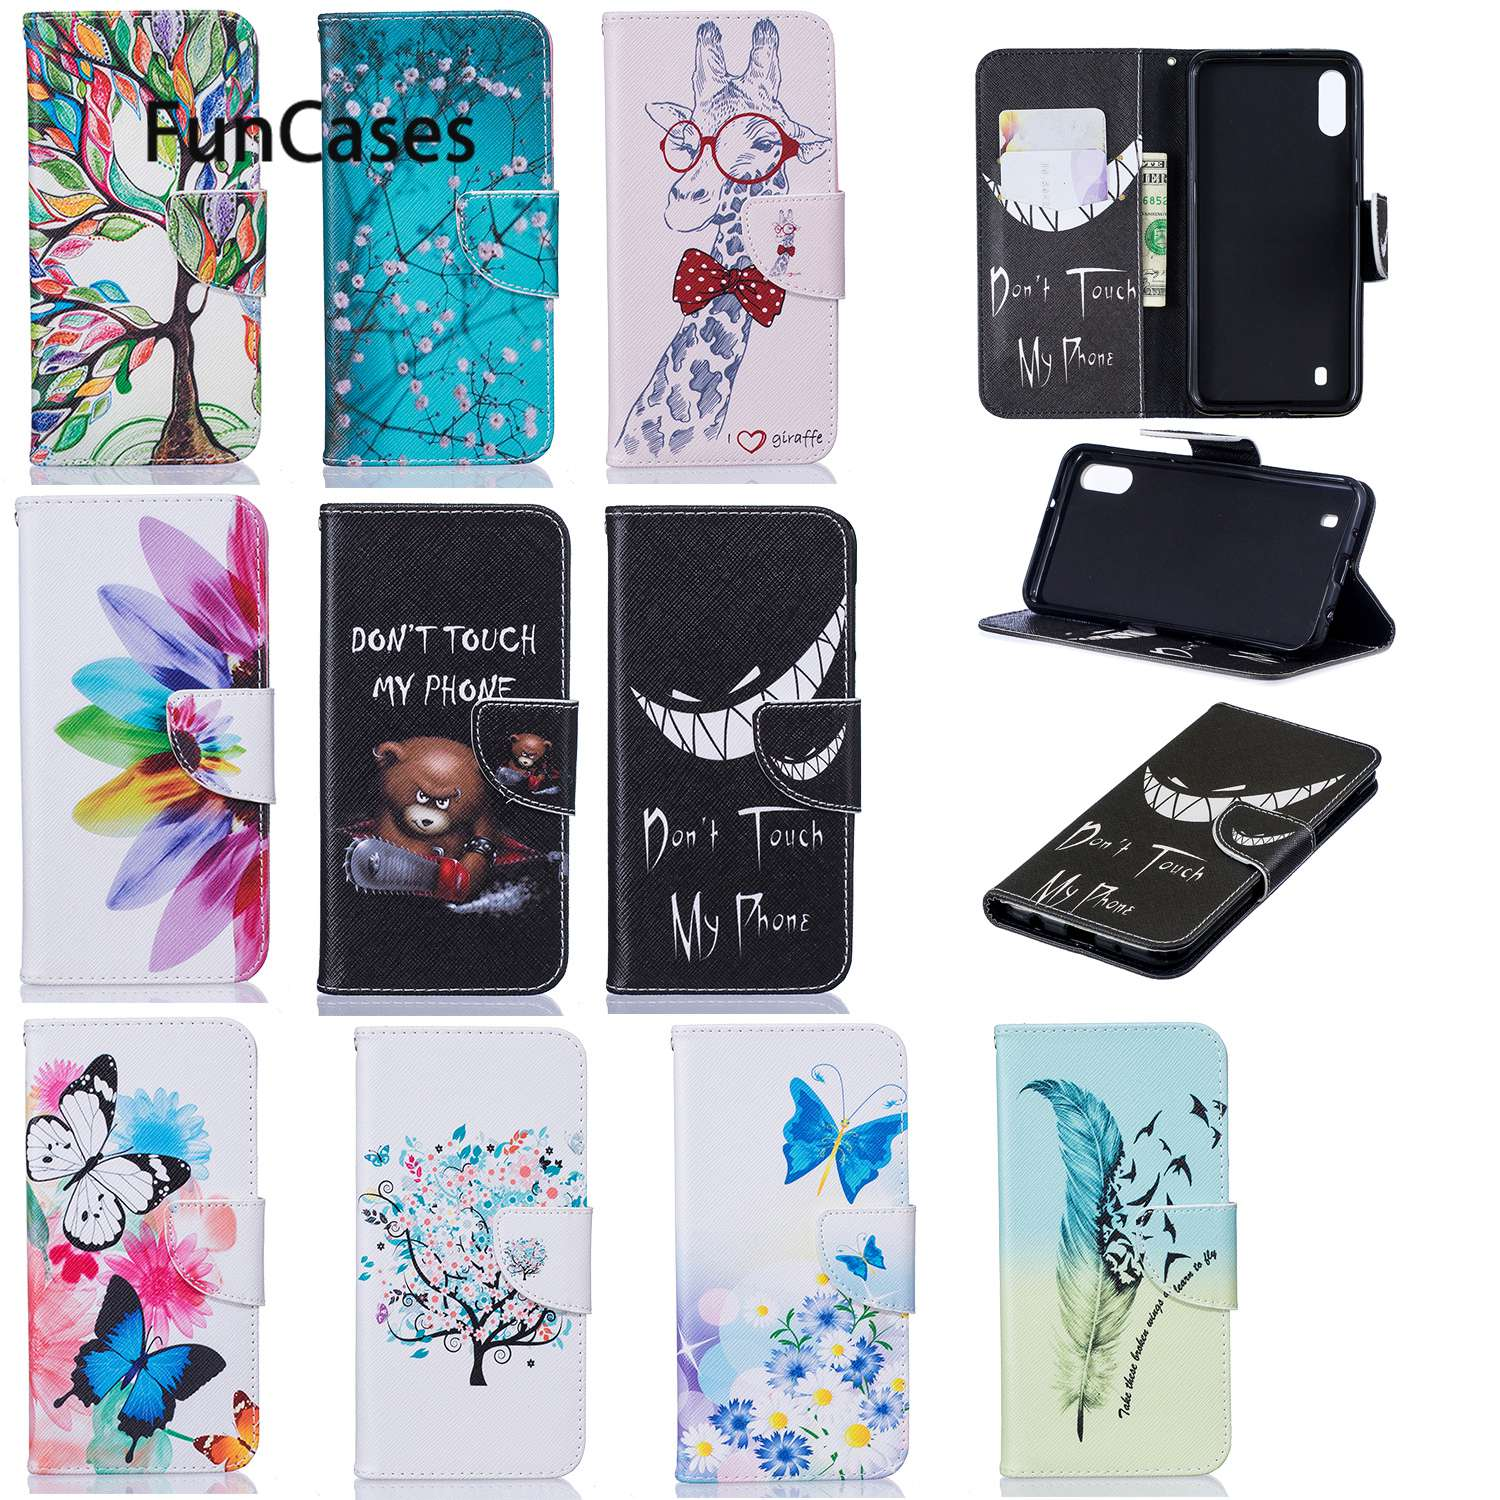 Life Tree Cases For Samsung M10 Galaxy A10 A10E A10S Note 10 Pro A30 A20S A71 S11 M20 M30 A50 S11E A70 A51 A20E A40 Wallet Case image